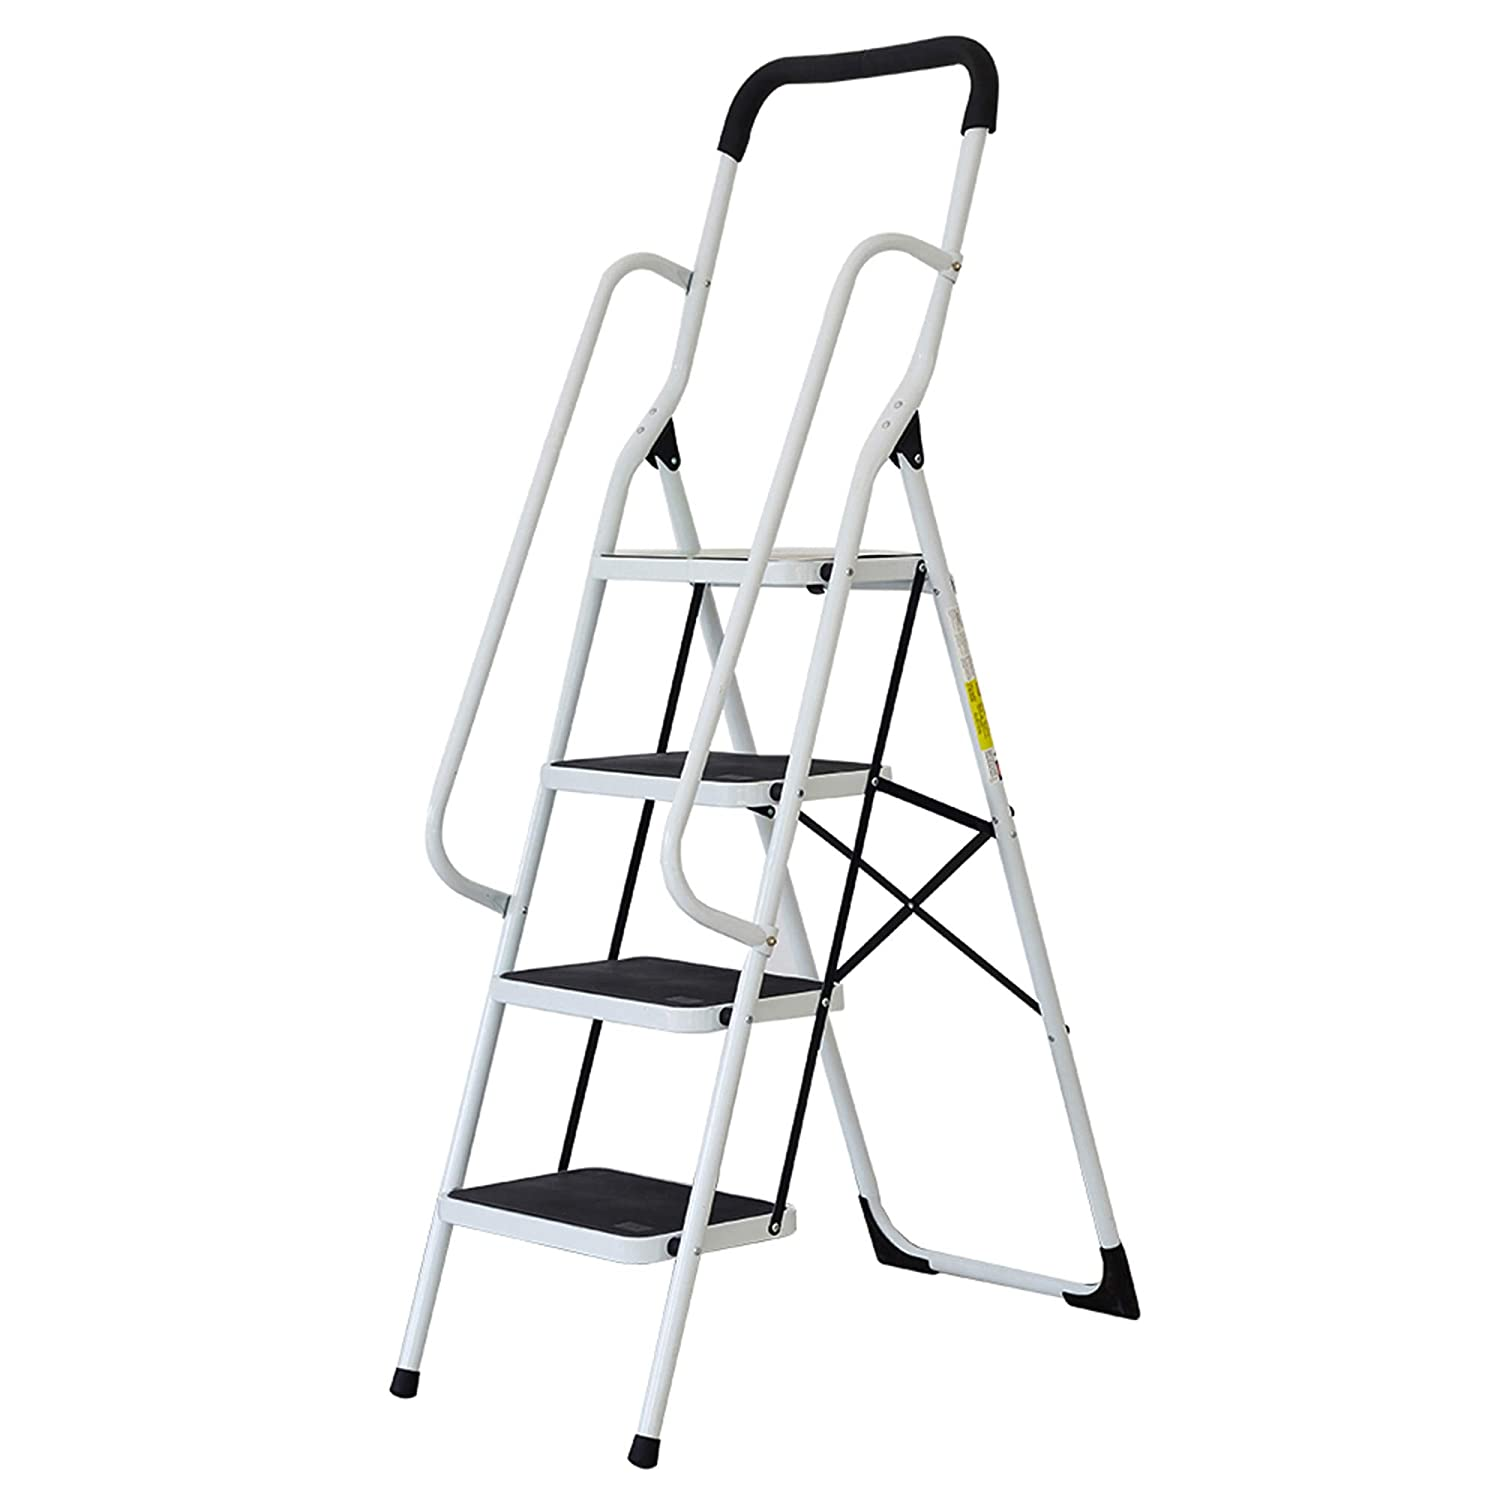 Lucky Tree Folding Step Ladder 4 Step Non-Slip Safety Step Stool with Side Handrails and Large Pedal Kitchen and Home Stepladder, 330 lbs Capacity